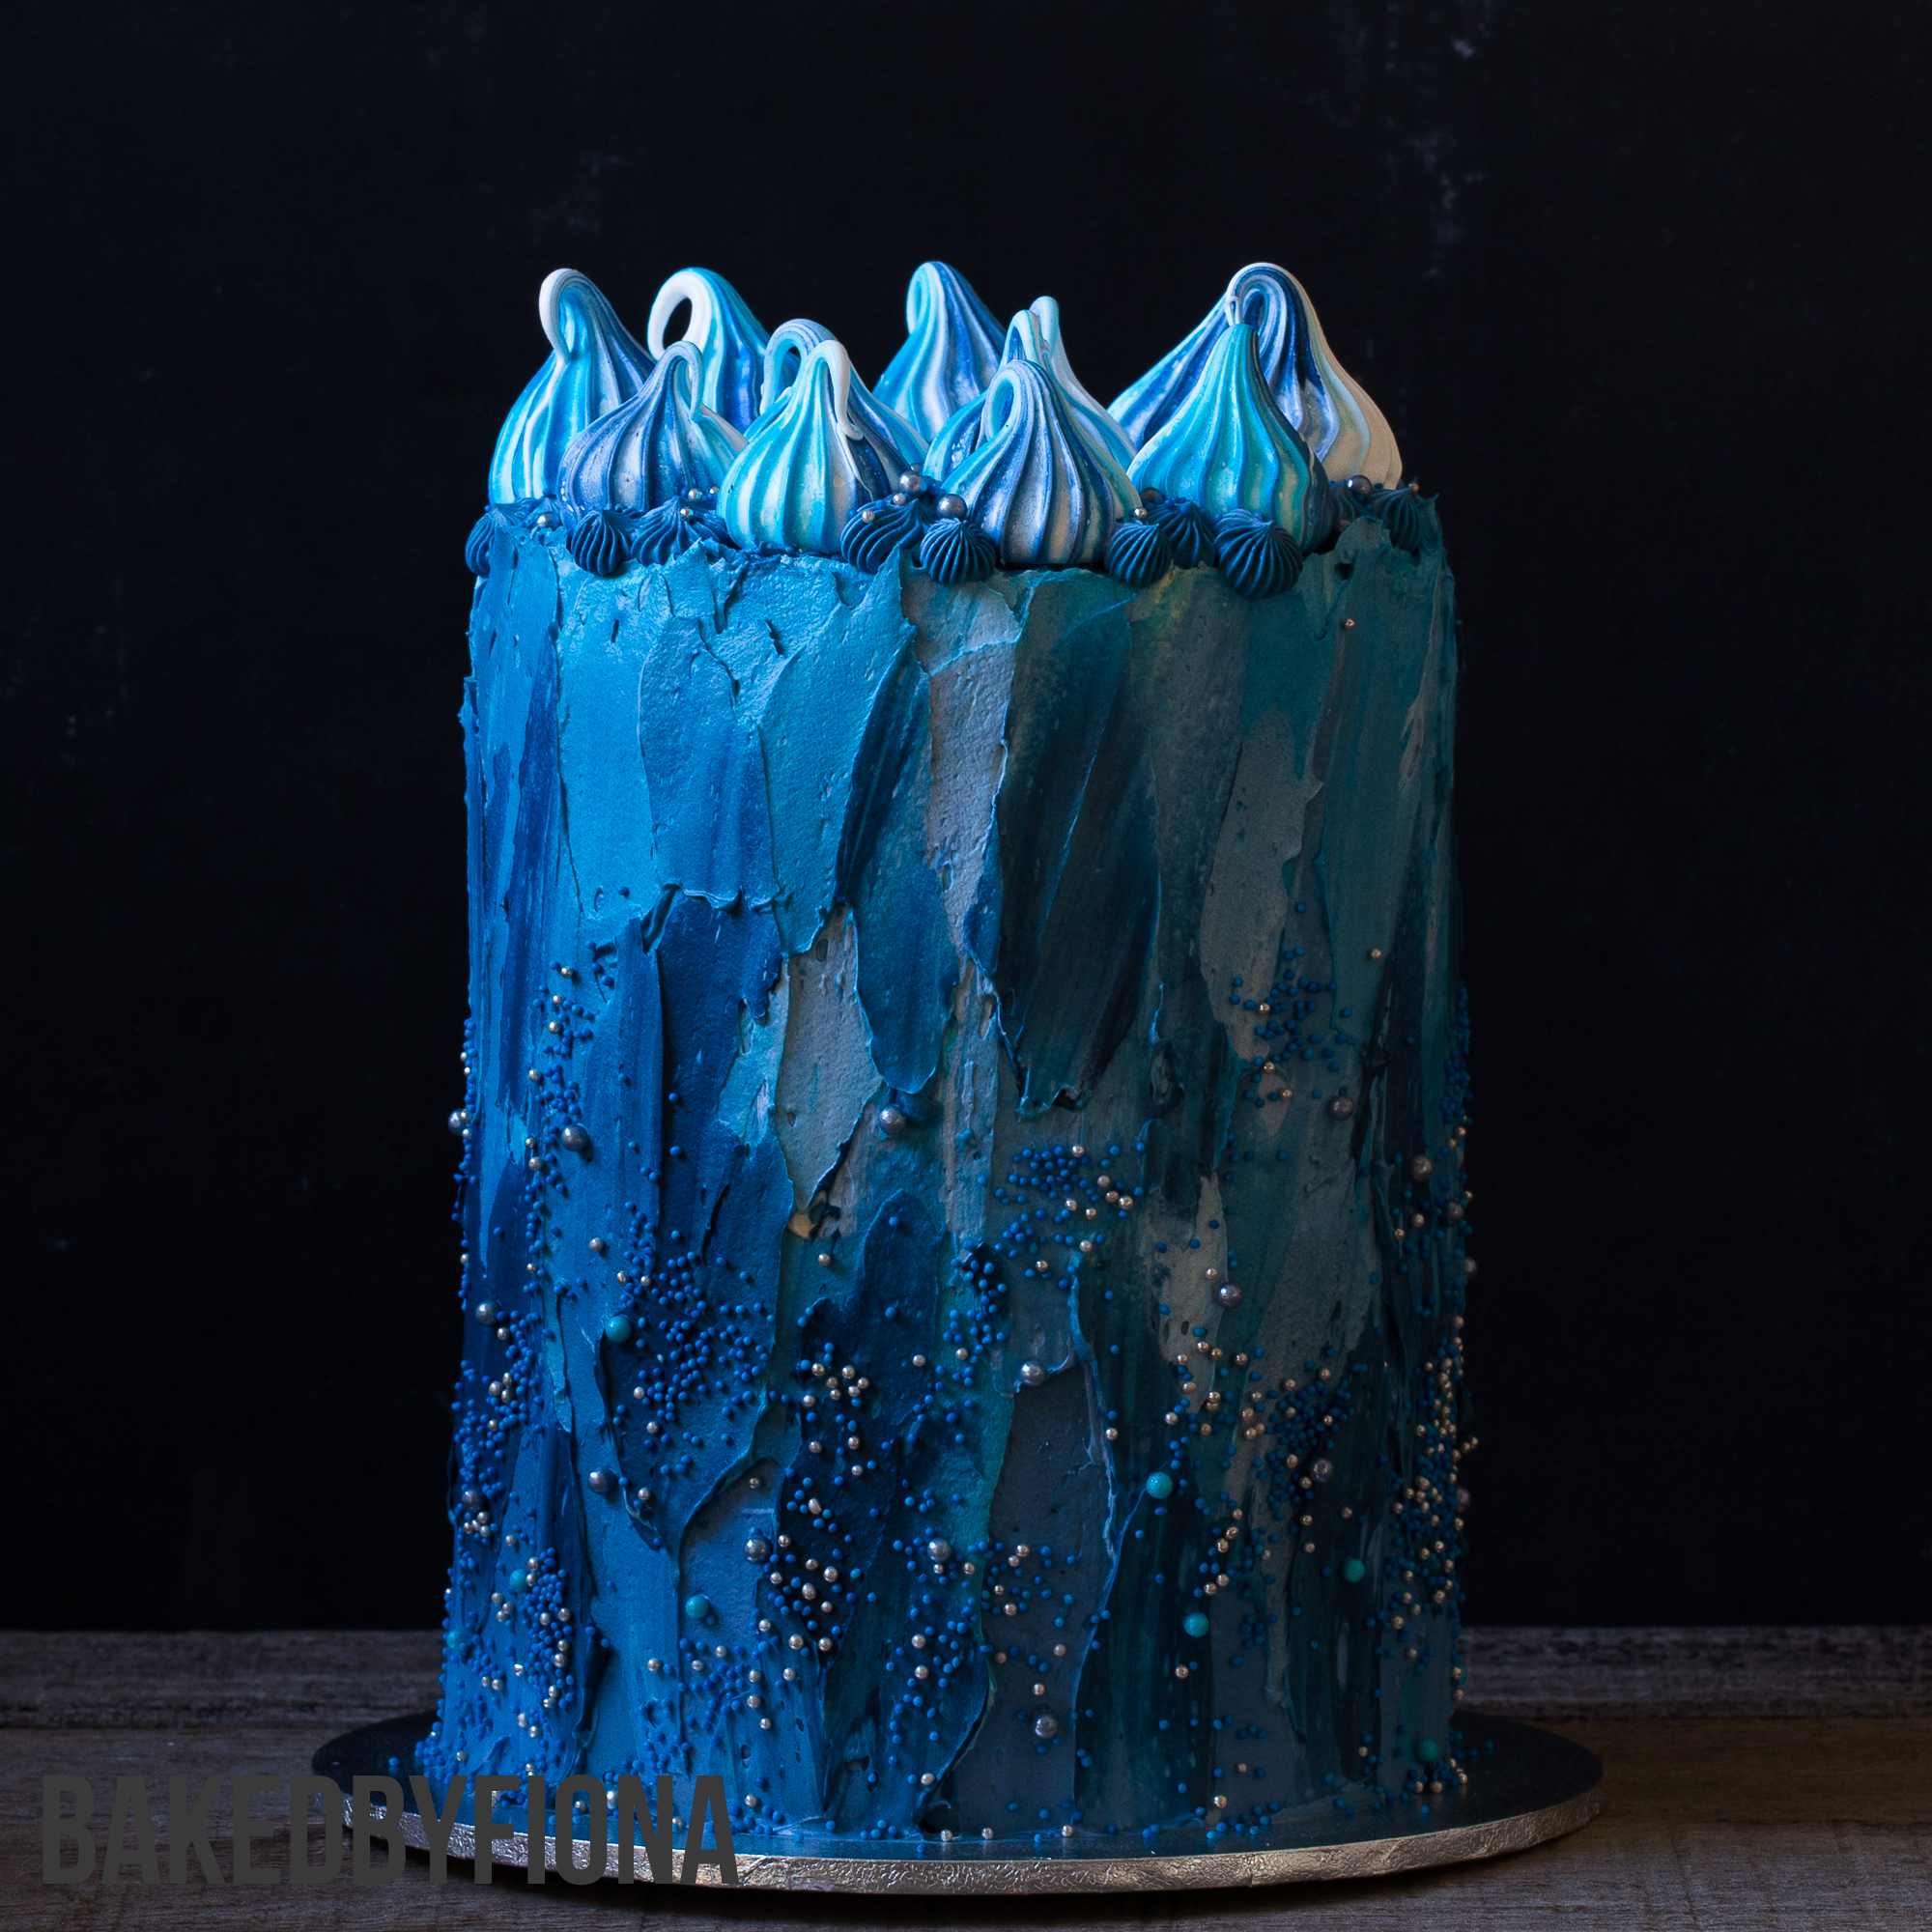 Sydney Cakes, Baked By Fiona 6 inch tower blue textured buttercream cake